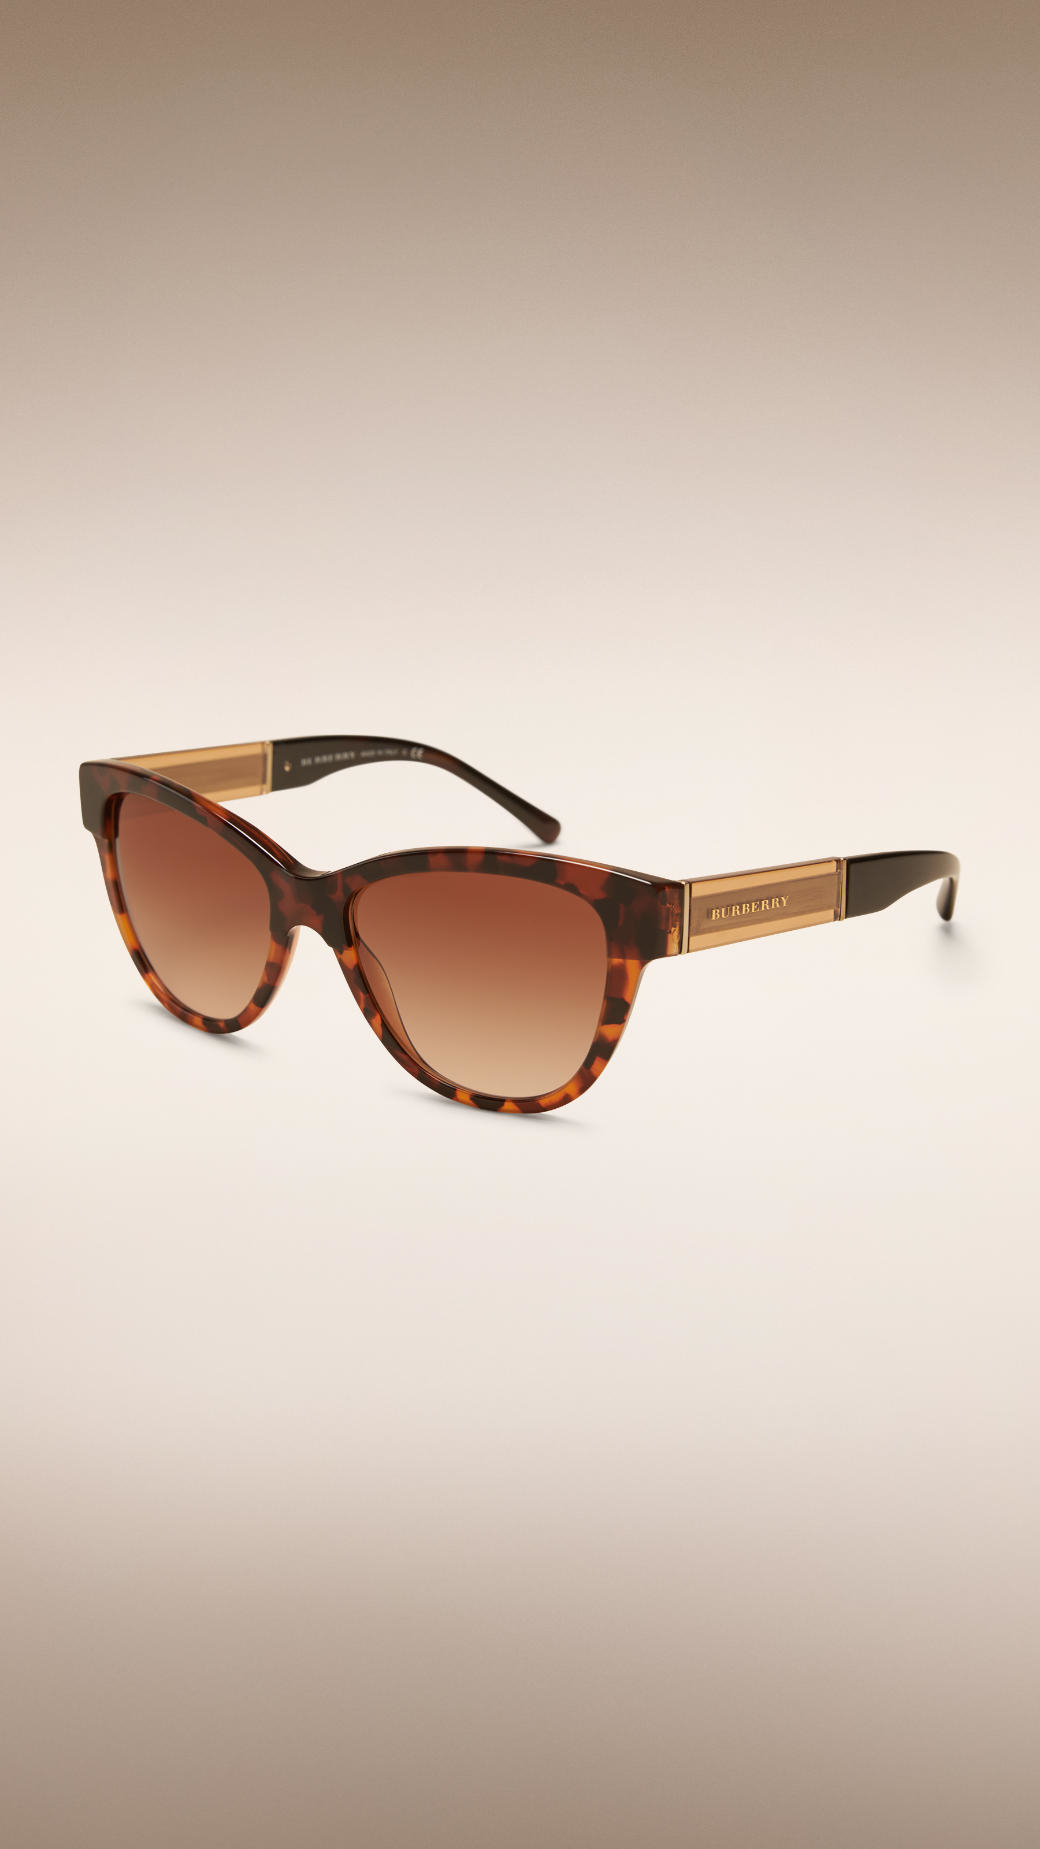 c010c3e14aeb Lyst - Burberry Cat-eye Sunglasses Tortoise Shell in Brown